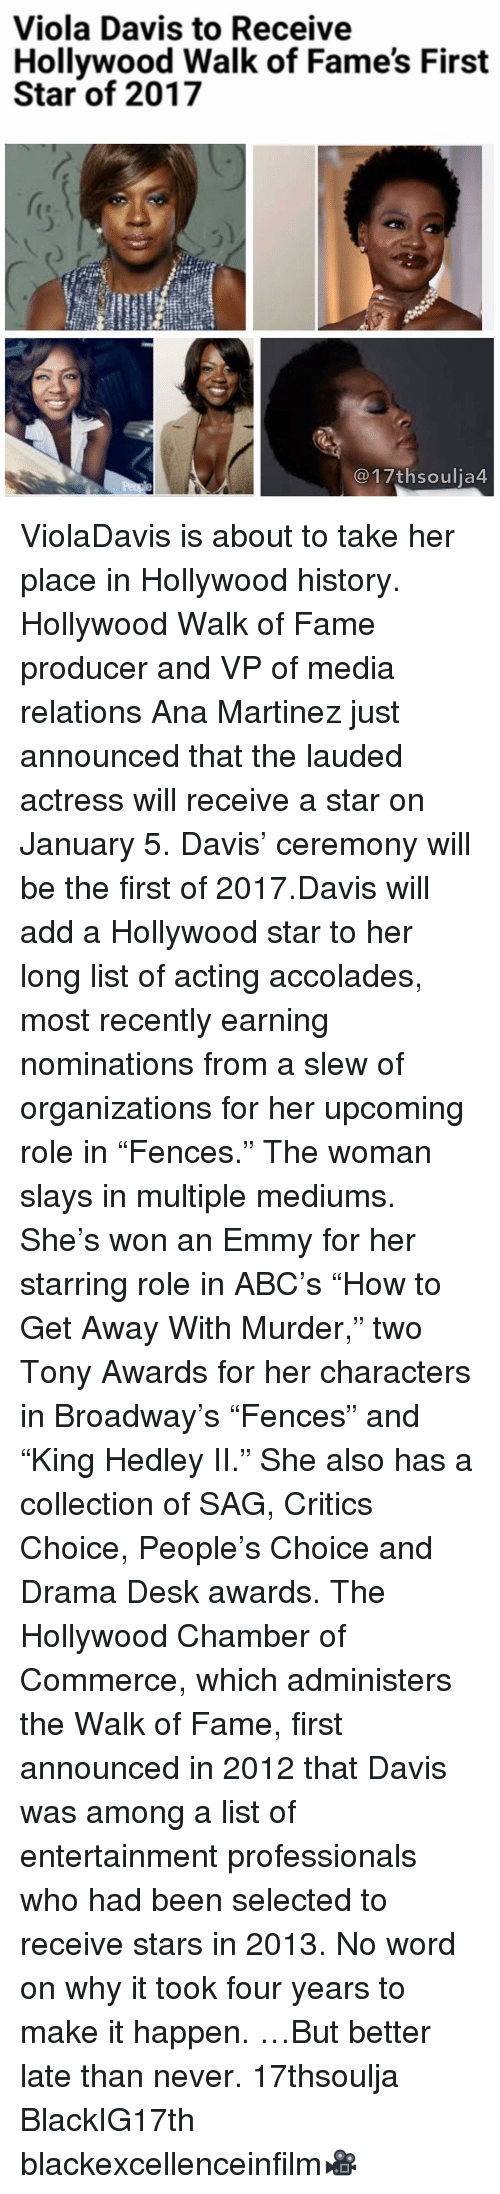 """Abc, Memes, and Desk: Viola Davis to Receive  Hollywood Walk of Fame's First  Star of 2017  17th soulia4 ViolaDavis is about to take her place in Hollywood history. Hollywood Walk of Fame producer and VP of media relations Ana Martinez just announced that the lauded actress will receive a star on January 5. Davis' ceremony will be the first of 2017.Davis will add a Hollywood star to her long list of acting accolades, most recently earning nominations from a slew of organizations for her upcoming role in """"Fences."""" The woman slays in multiple mediums. She's won an Emmy for her starring role in ABC's """"How to Get Away With Murder,"""" two Tony Awards for her characters in Broadway's """"Fences"""" and """"King Hedley II."""" She also has a collection of SAG, Critics Choice, People's Choice and Drama Desk awards. The Hollywood Chamber of Commerce, which administers the Walk of Fame, first announced in 2012 that Davis was among a list of entertainment professionals who had been selected to receive stars in 2013. No word on why it took four years to make it happen. …But better late than never. 17thsoulja BlackIG17th blackexcellenceinfilm🎥"""